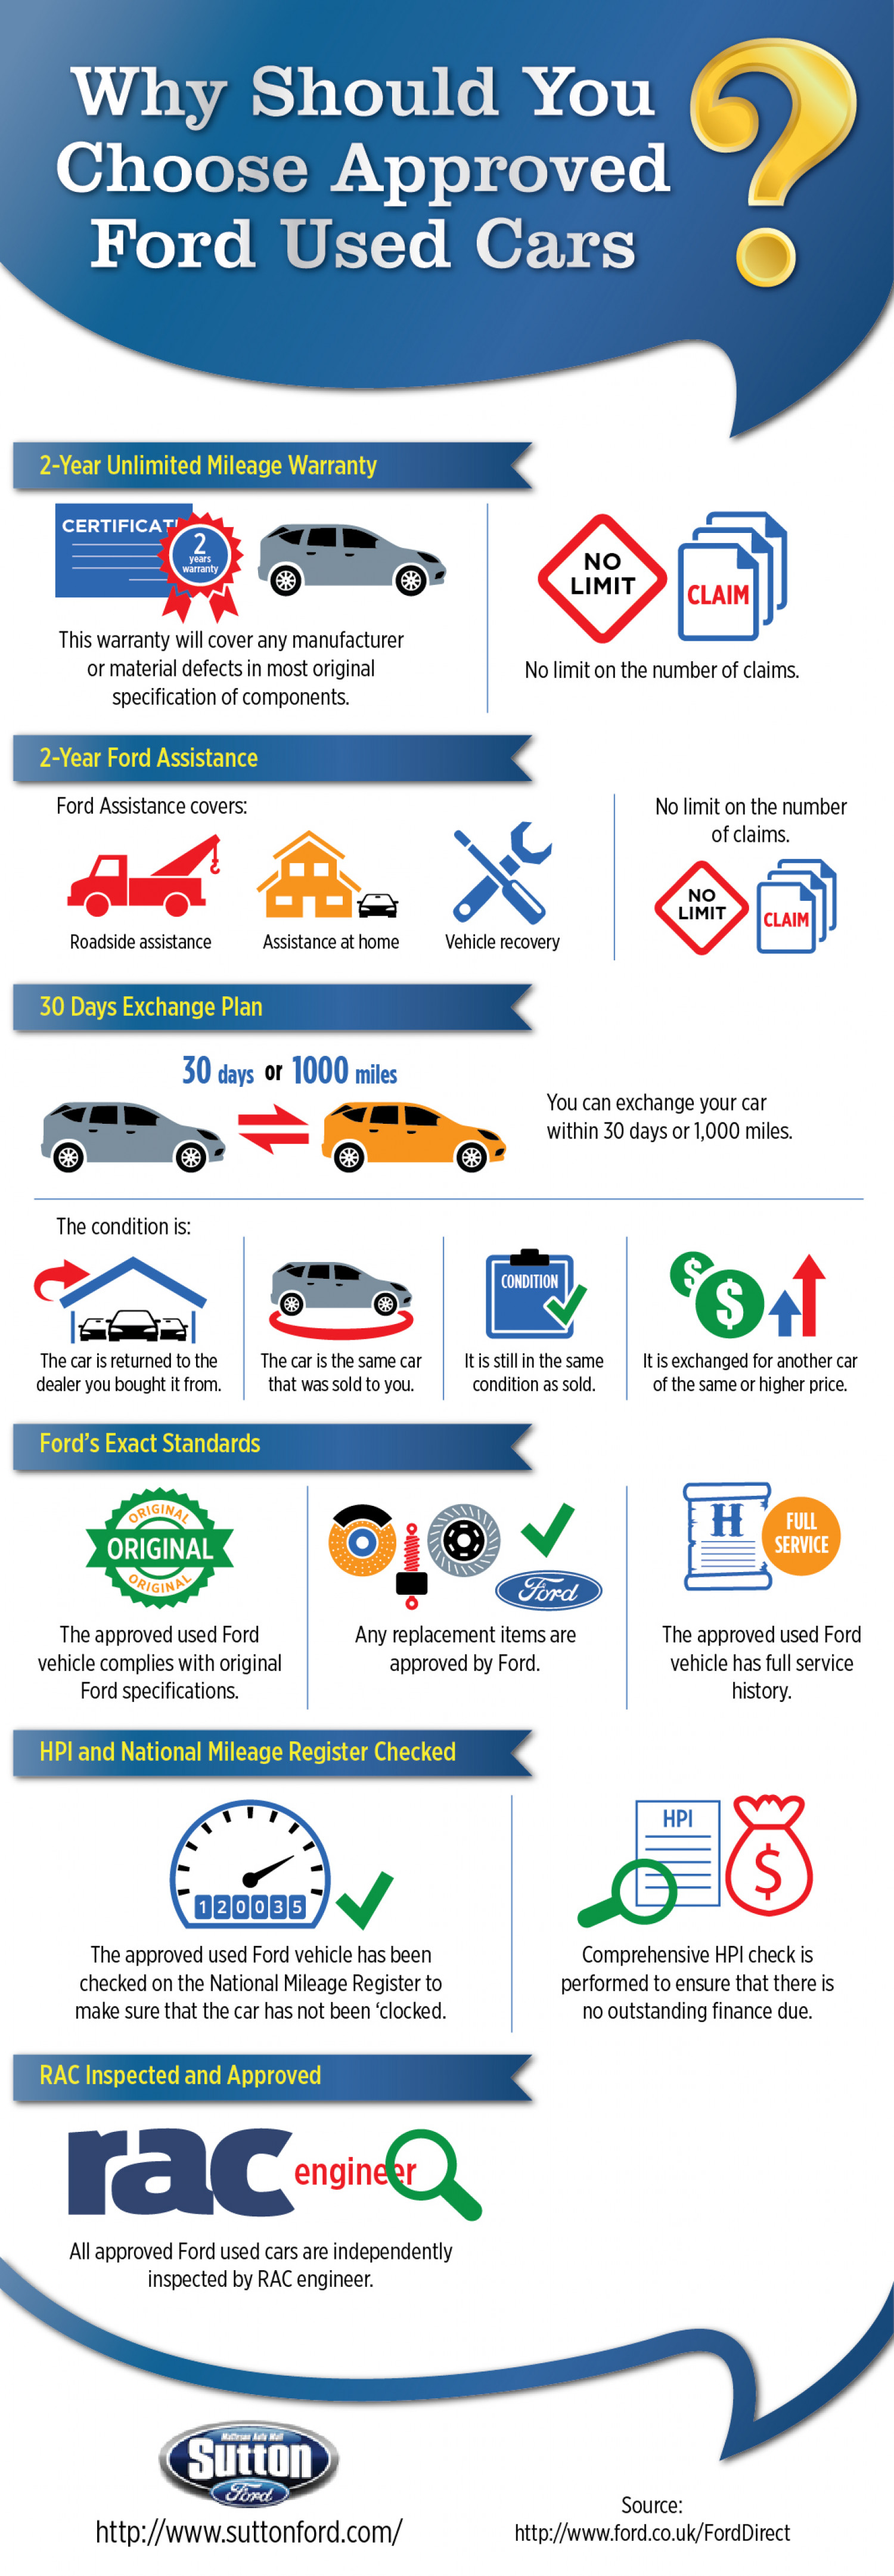 Why Should You Choose Approved Ford Used Cars? Infographic